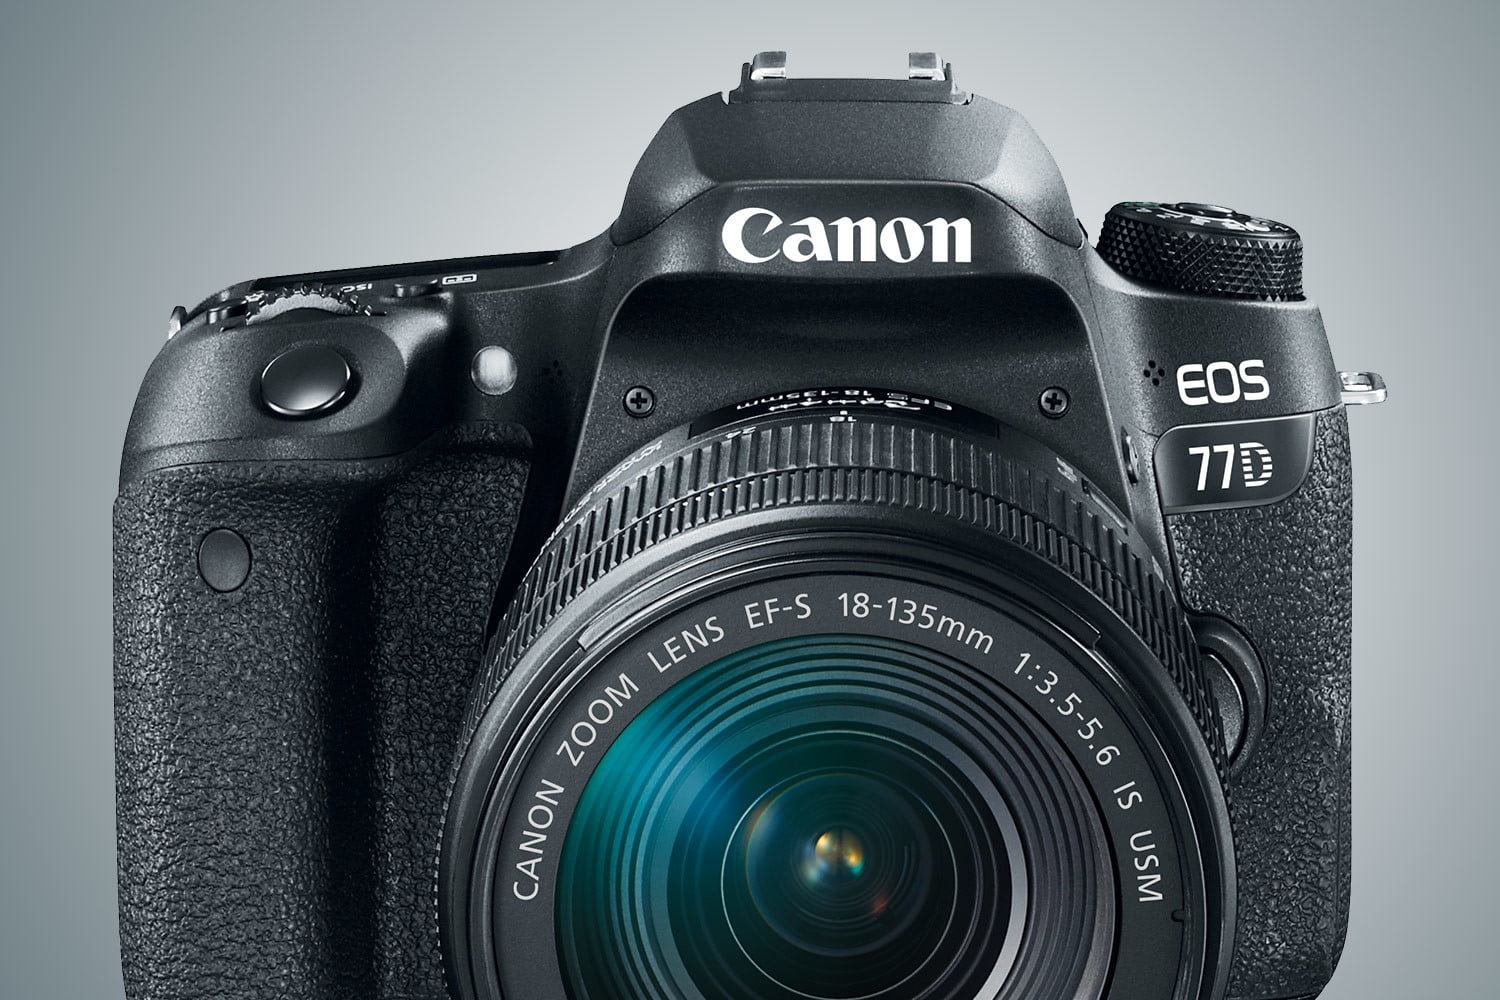 Canon's New EOS 77D and Rebel T7i Inherit Tech from the 80D